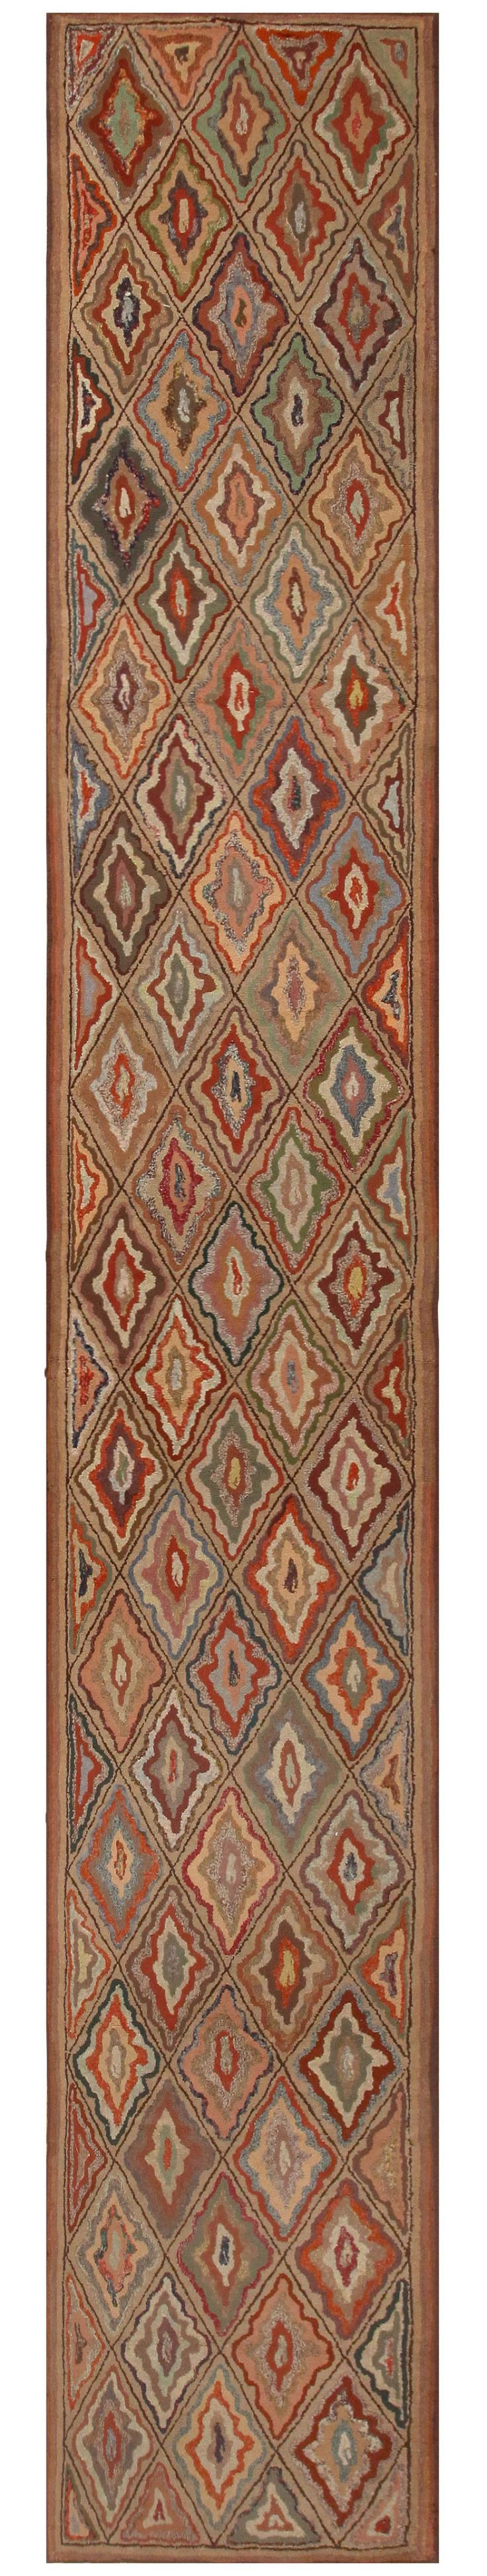 Antique American Hooked Rug 50108